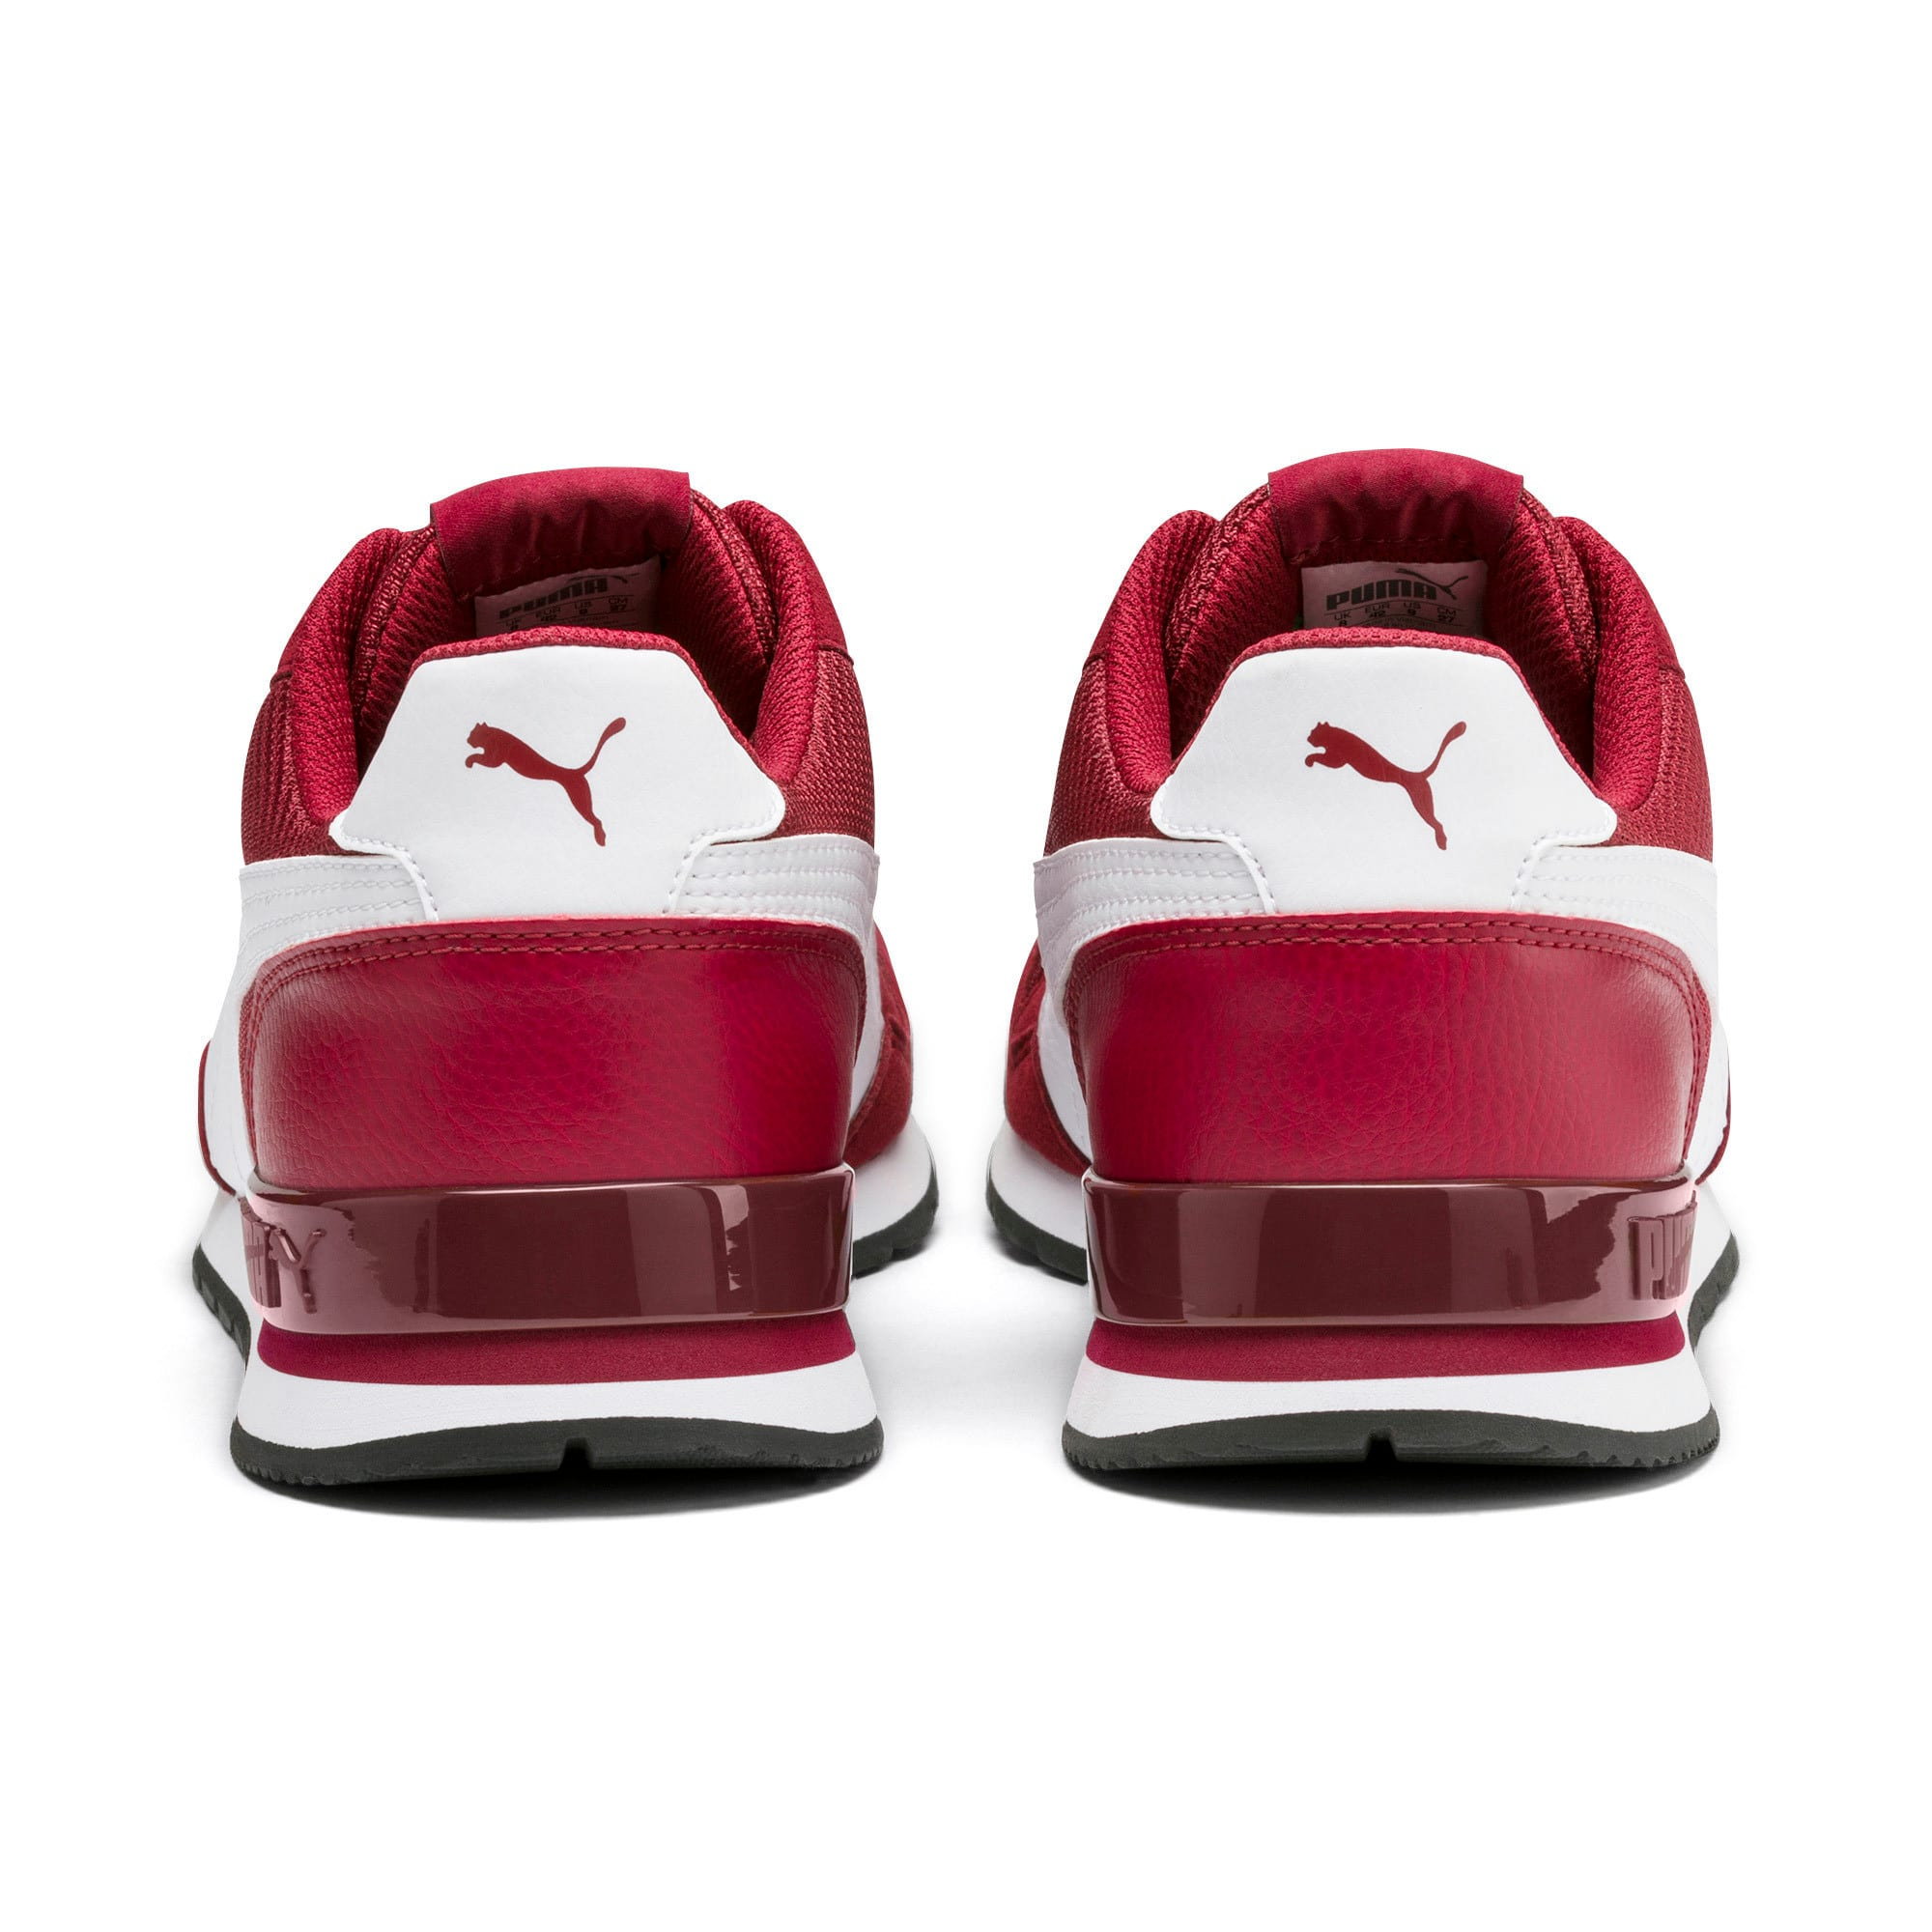 Thumbnail 4 of ST Runner v2 Mesh Sneakers, Rhubarb-Puma White, medium